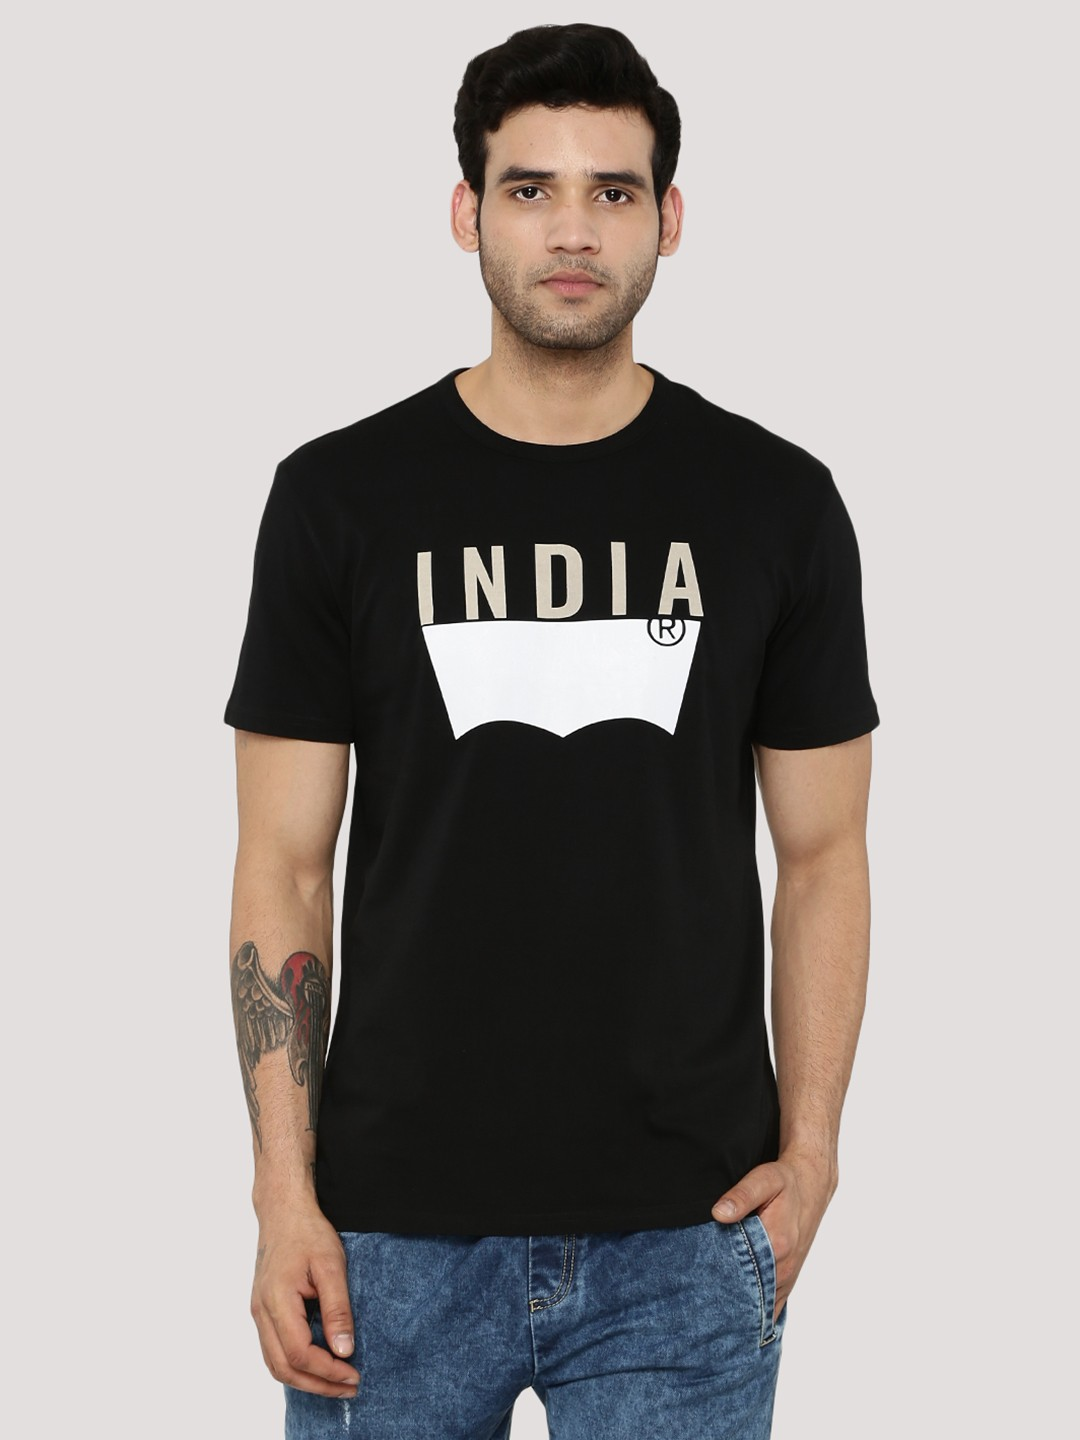 Black t shirt buy online - Levi S Batwing Logo India T Shirt